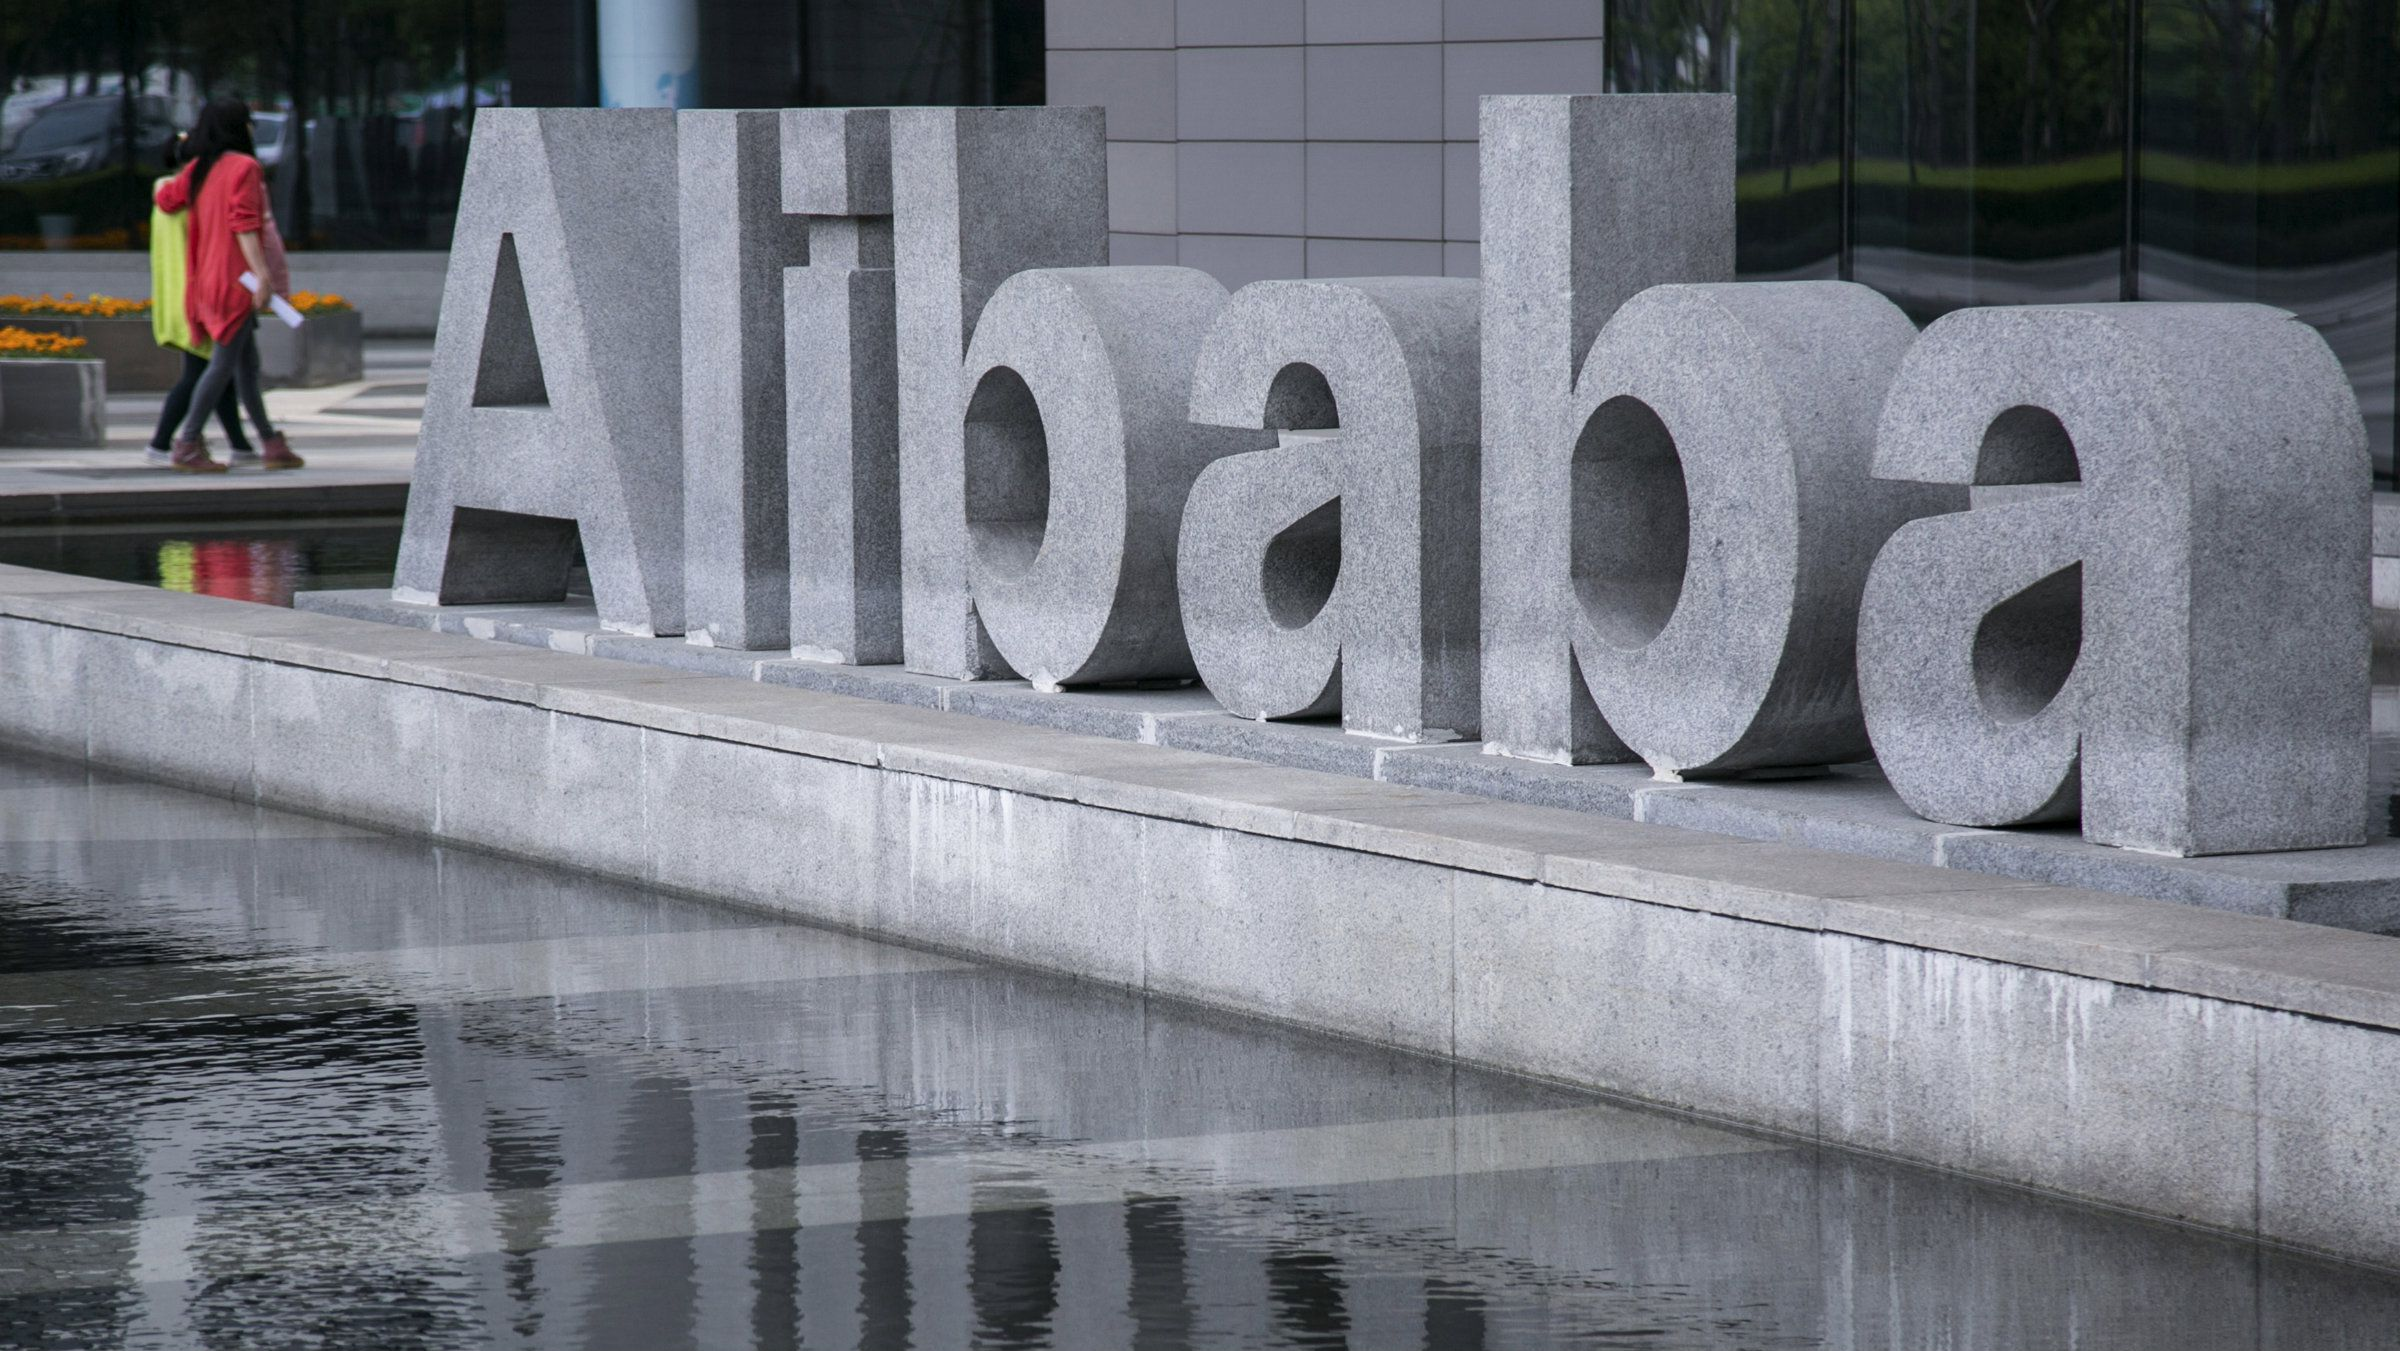 People walk at the headquarters of Alibaba in Hangzhou, Zhejiang province, April 23, 2014. A